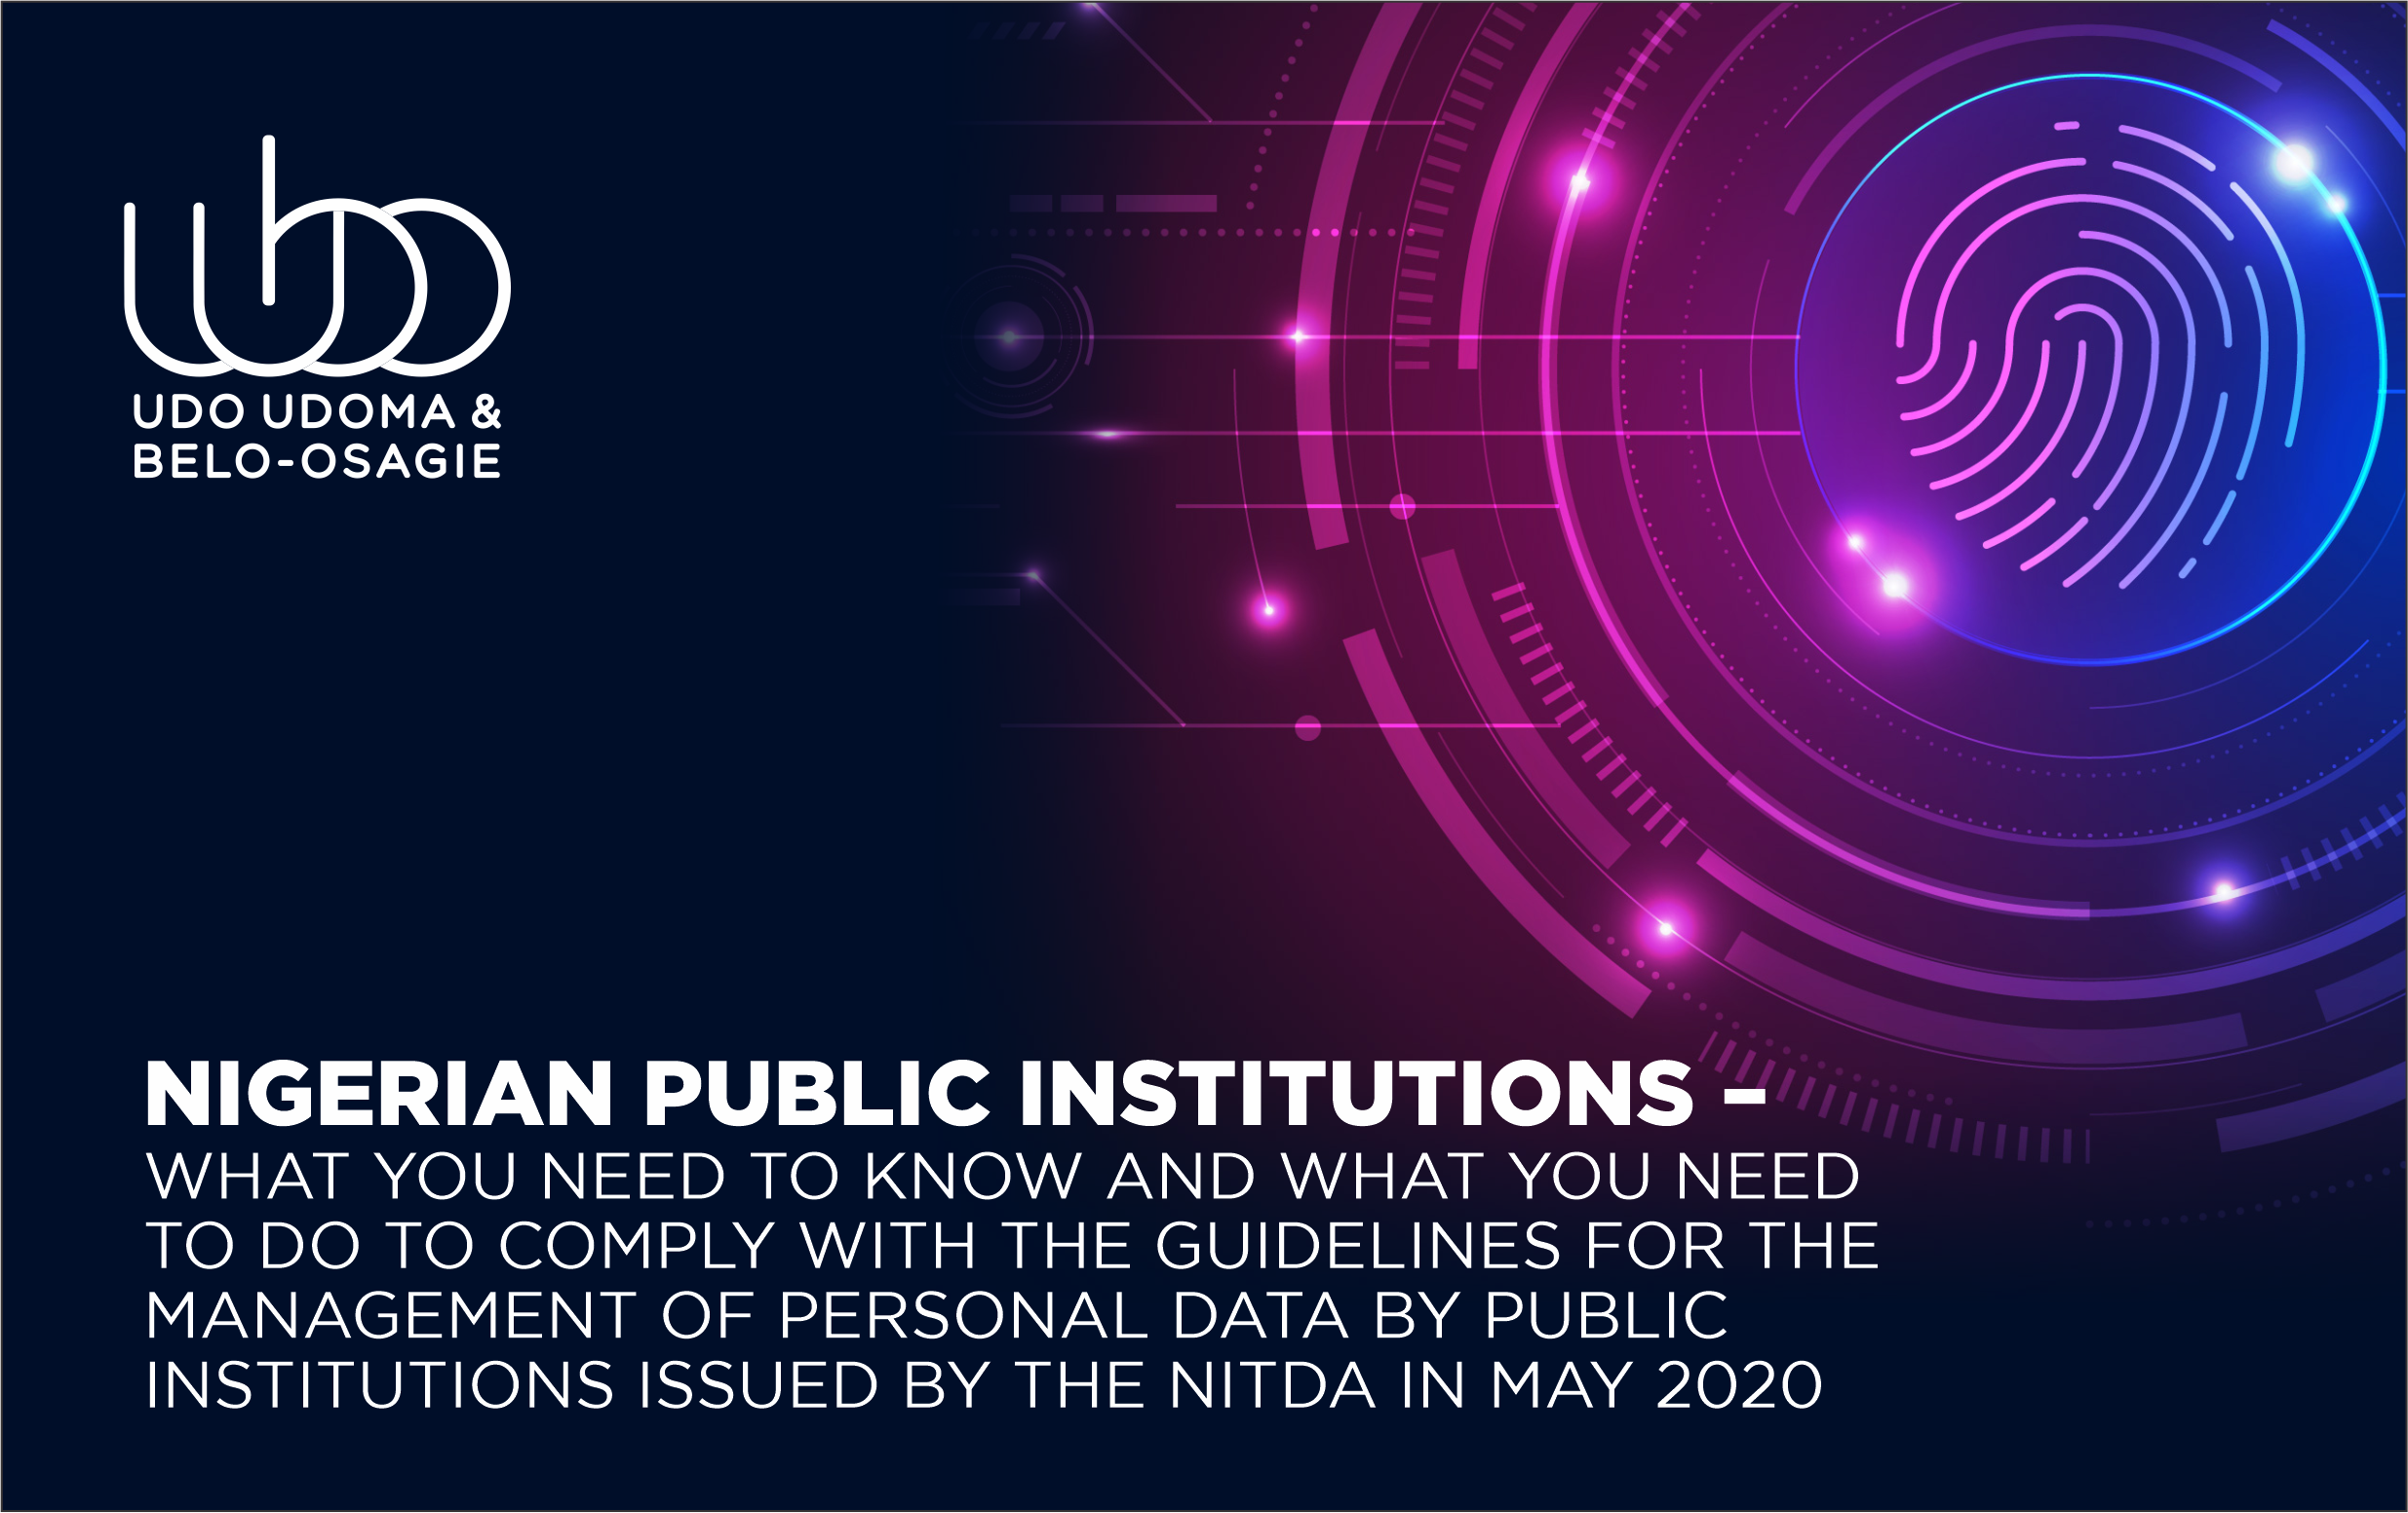 NIGERIAN PUBLIC INSTITUTIONS – WHAT YOU NEED TO KNOW AND WHAT YOU NEED TO DO TO COMPLY WITH THE GUIDELINES FOR THE MANAGEMENT OF PERSONAL DATA BY PUBLIC INSTITUTIONS ISSUED BY THE NITDA IN MAY 2020